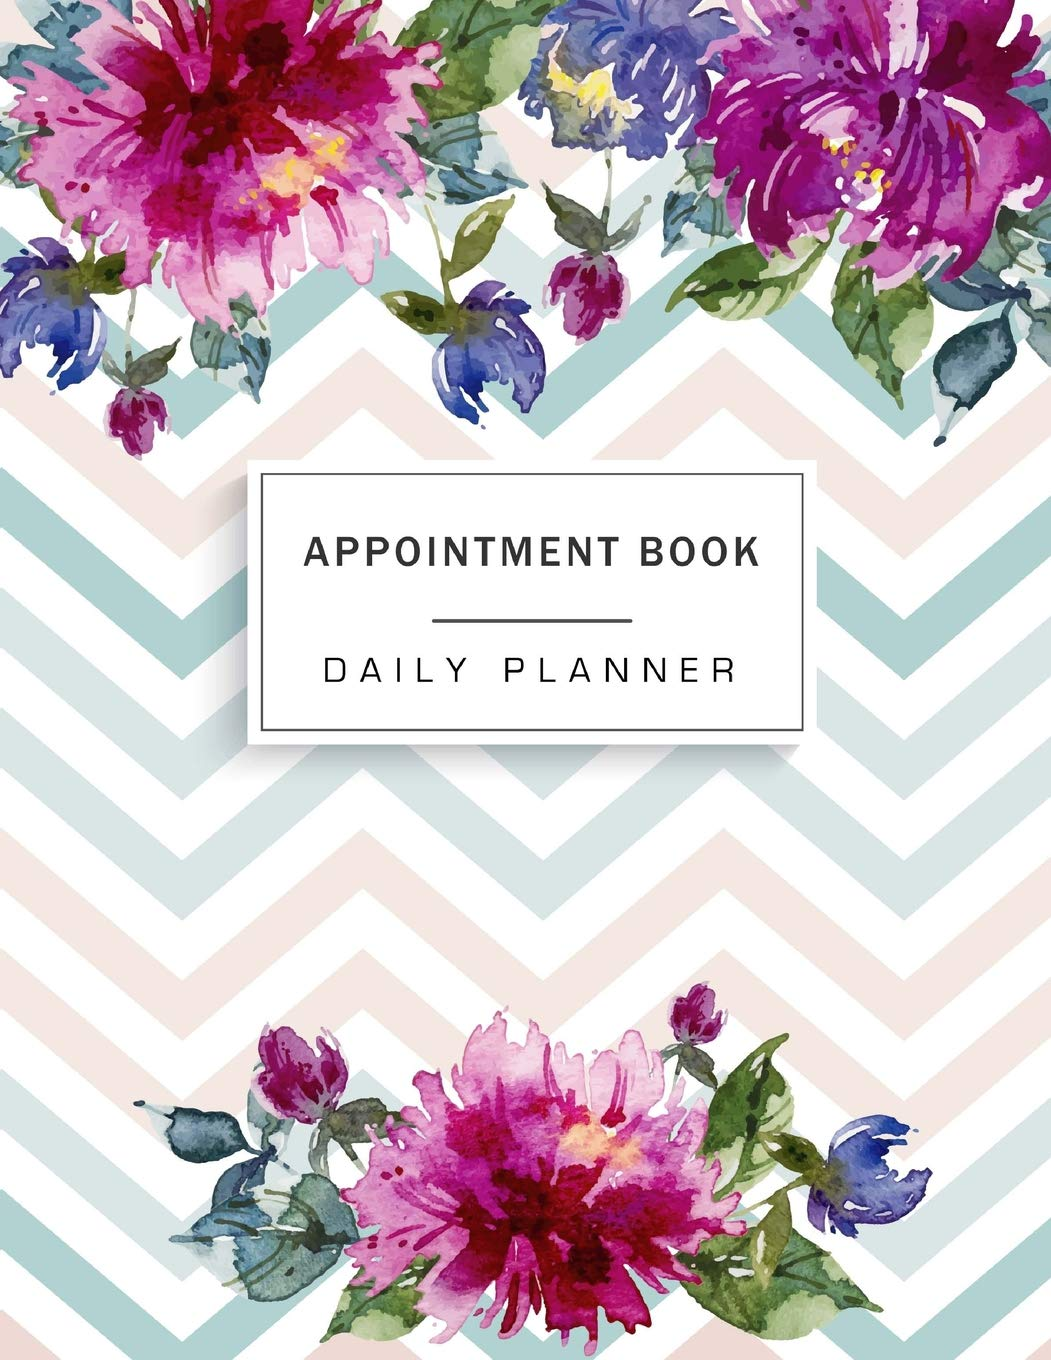 Appointment Book Watercolor Schedule Increments product image